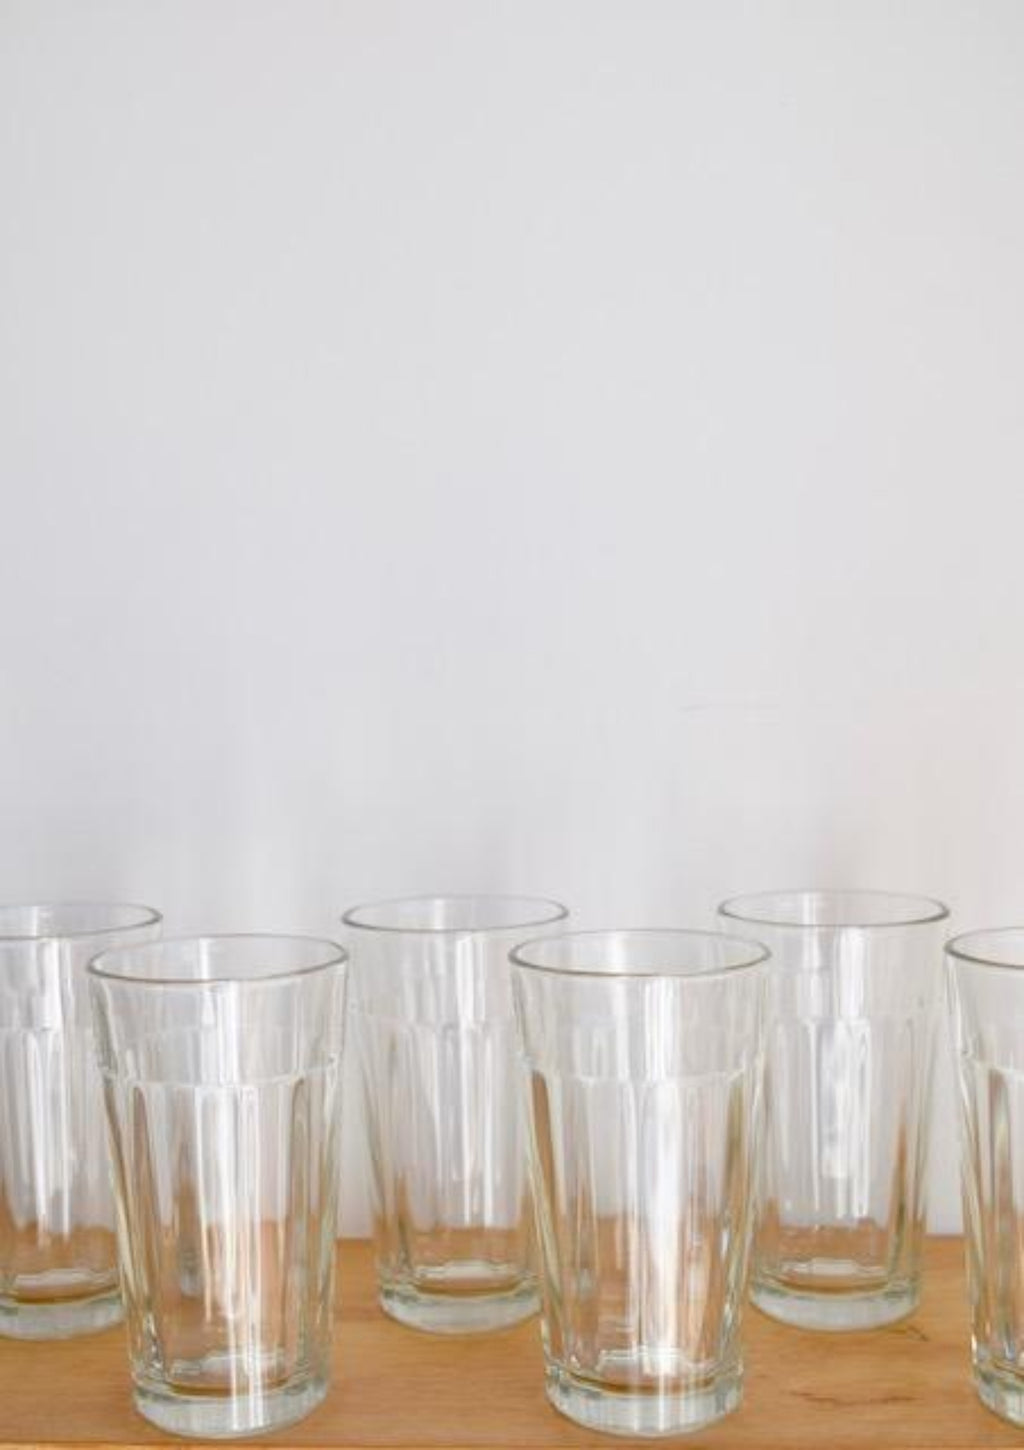 Libbey Ribbed Glasses